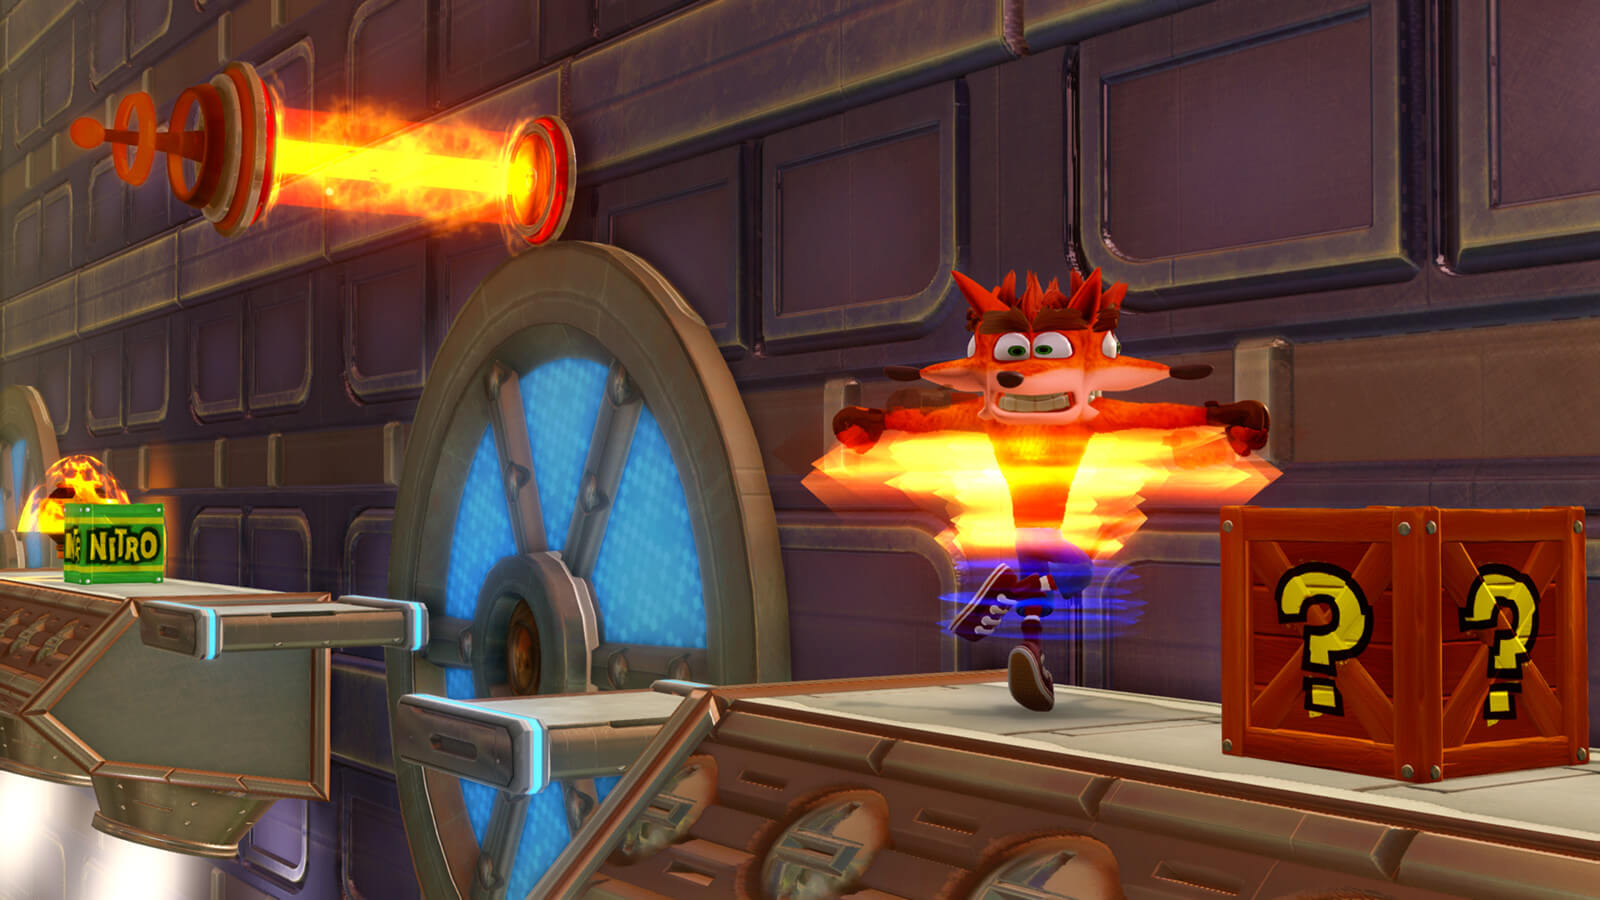 Screenshot da fase Future Tense de Crash Bandicoot N. Sane Trilogy